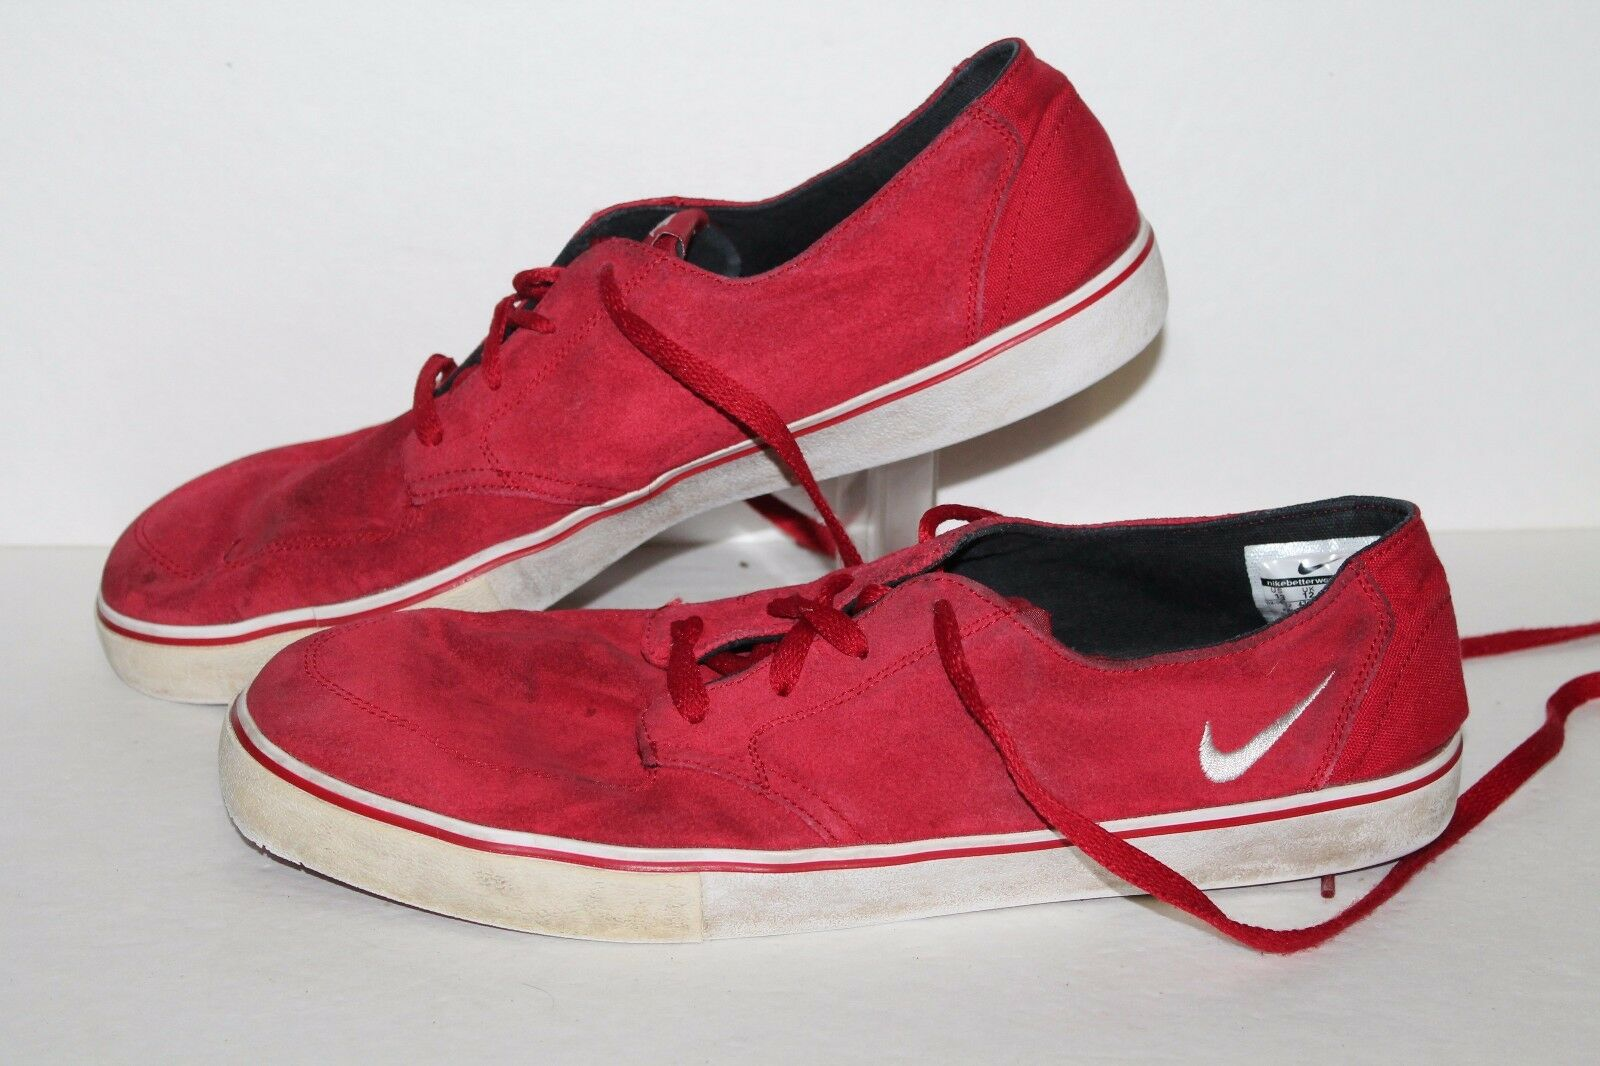 Nike Braata LR Casual Sneakers, Red, Leather, Mens US Comfortable  Casual wild